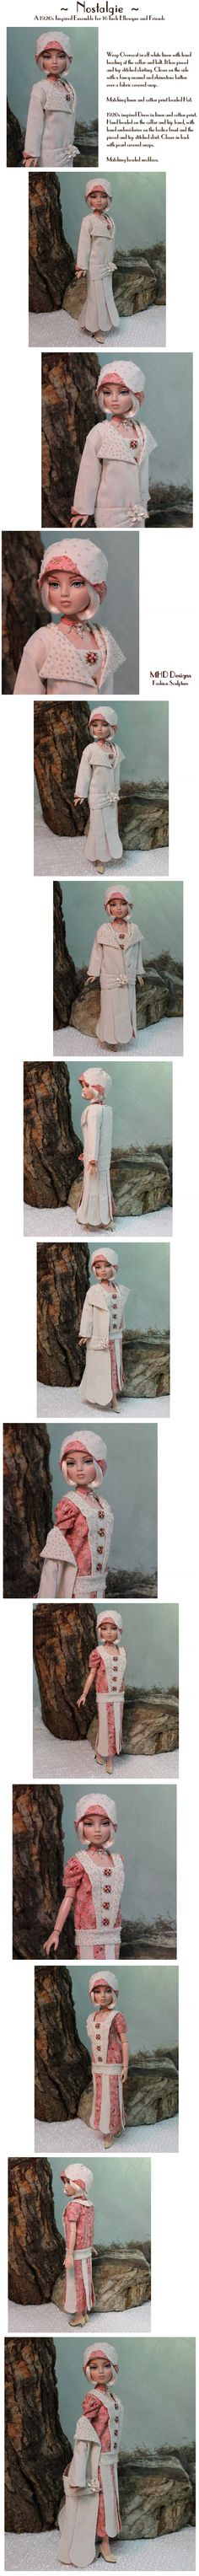 """New MHD auction, """"Nostalgie"""" outfit.. Sold 9/23/13 for $202.50."""